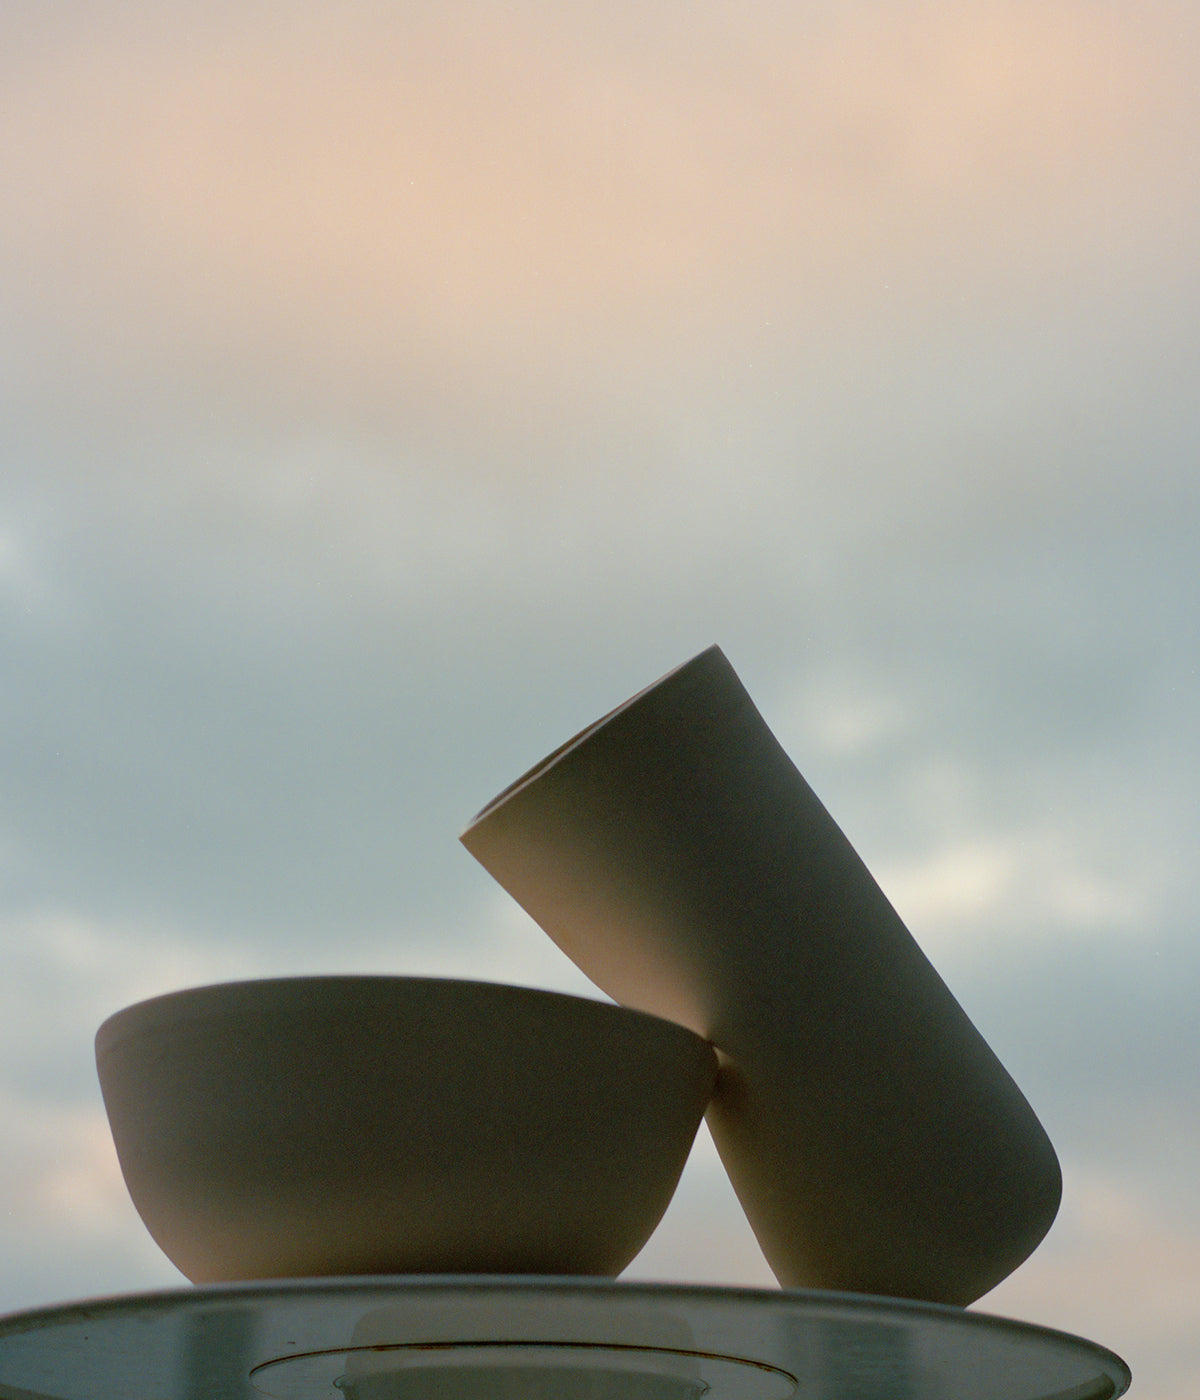 white porcelain hand-thrown ceramics on table against summer evening sky with soft clouds and orange sunset